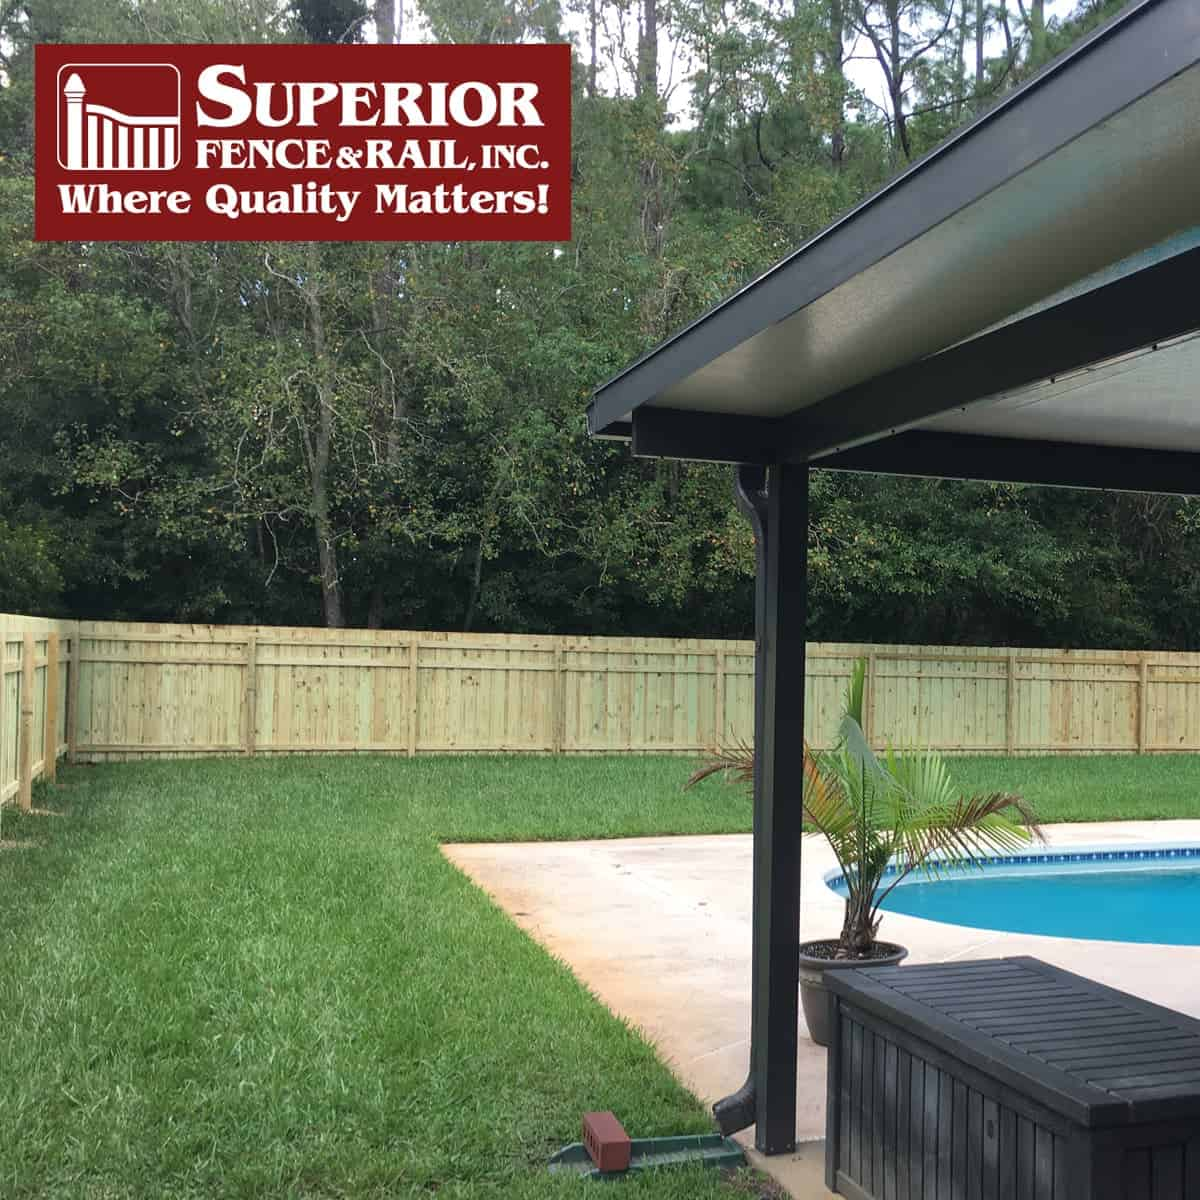 https://www.superiorfenceandrail.com/wp-content/uploads/2020/06/Daphne-Fence-Company-Contractor.jpg